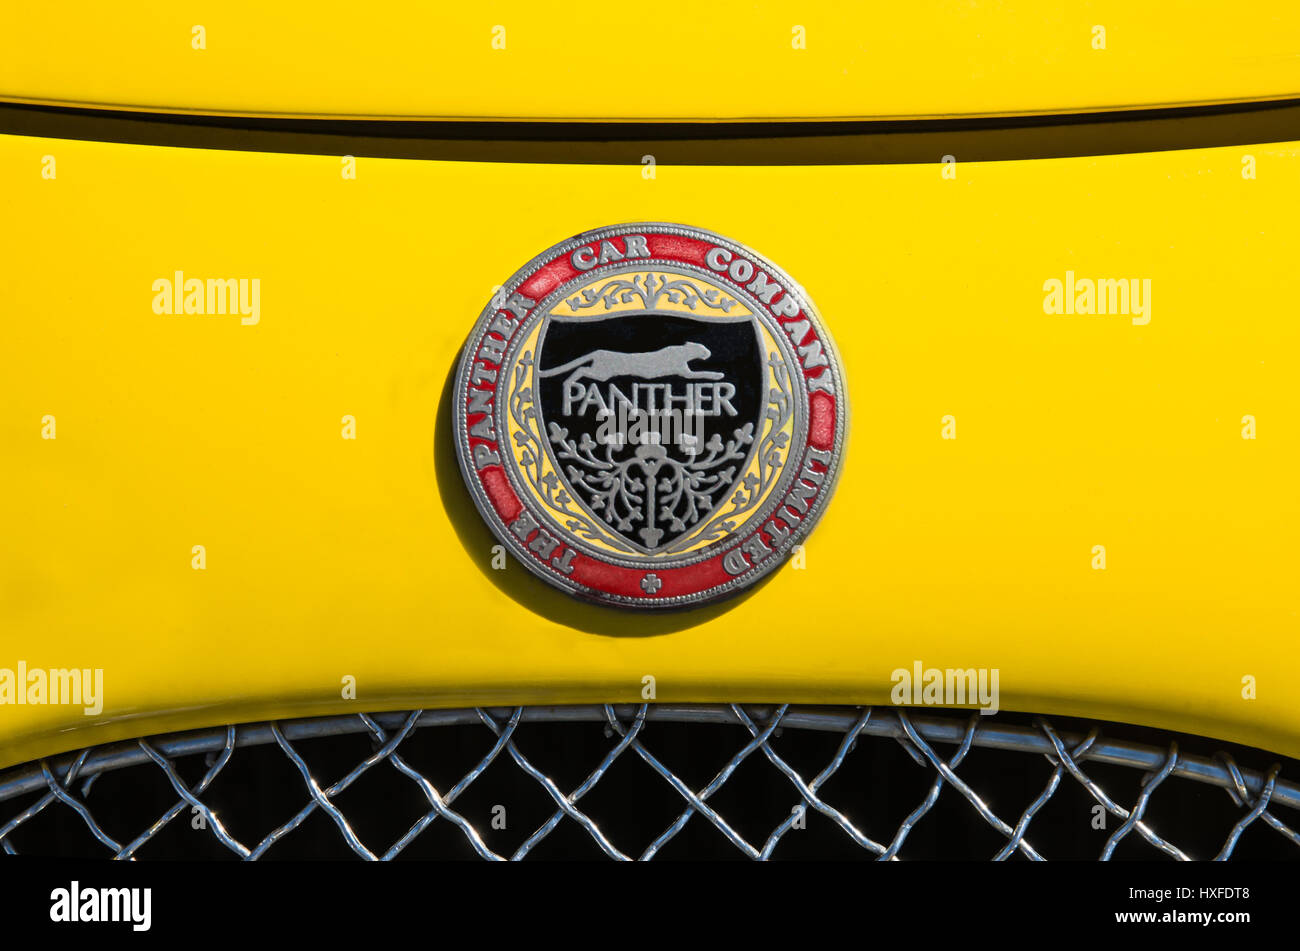 The Panther Car Company Limited Badge, Logo on the front of a Yellow